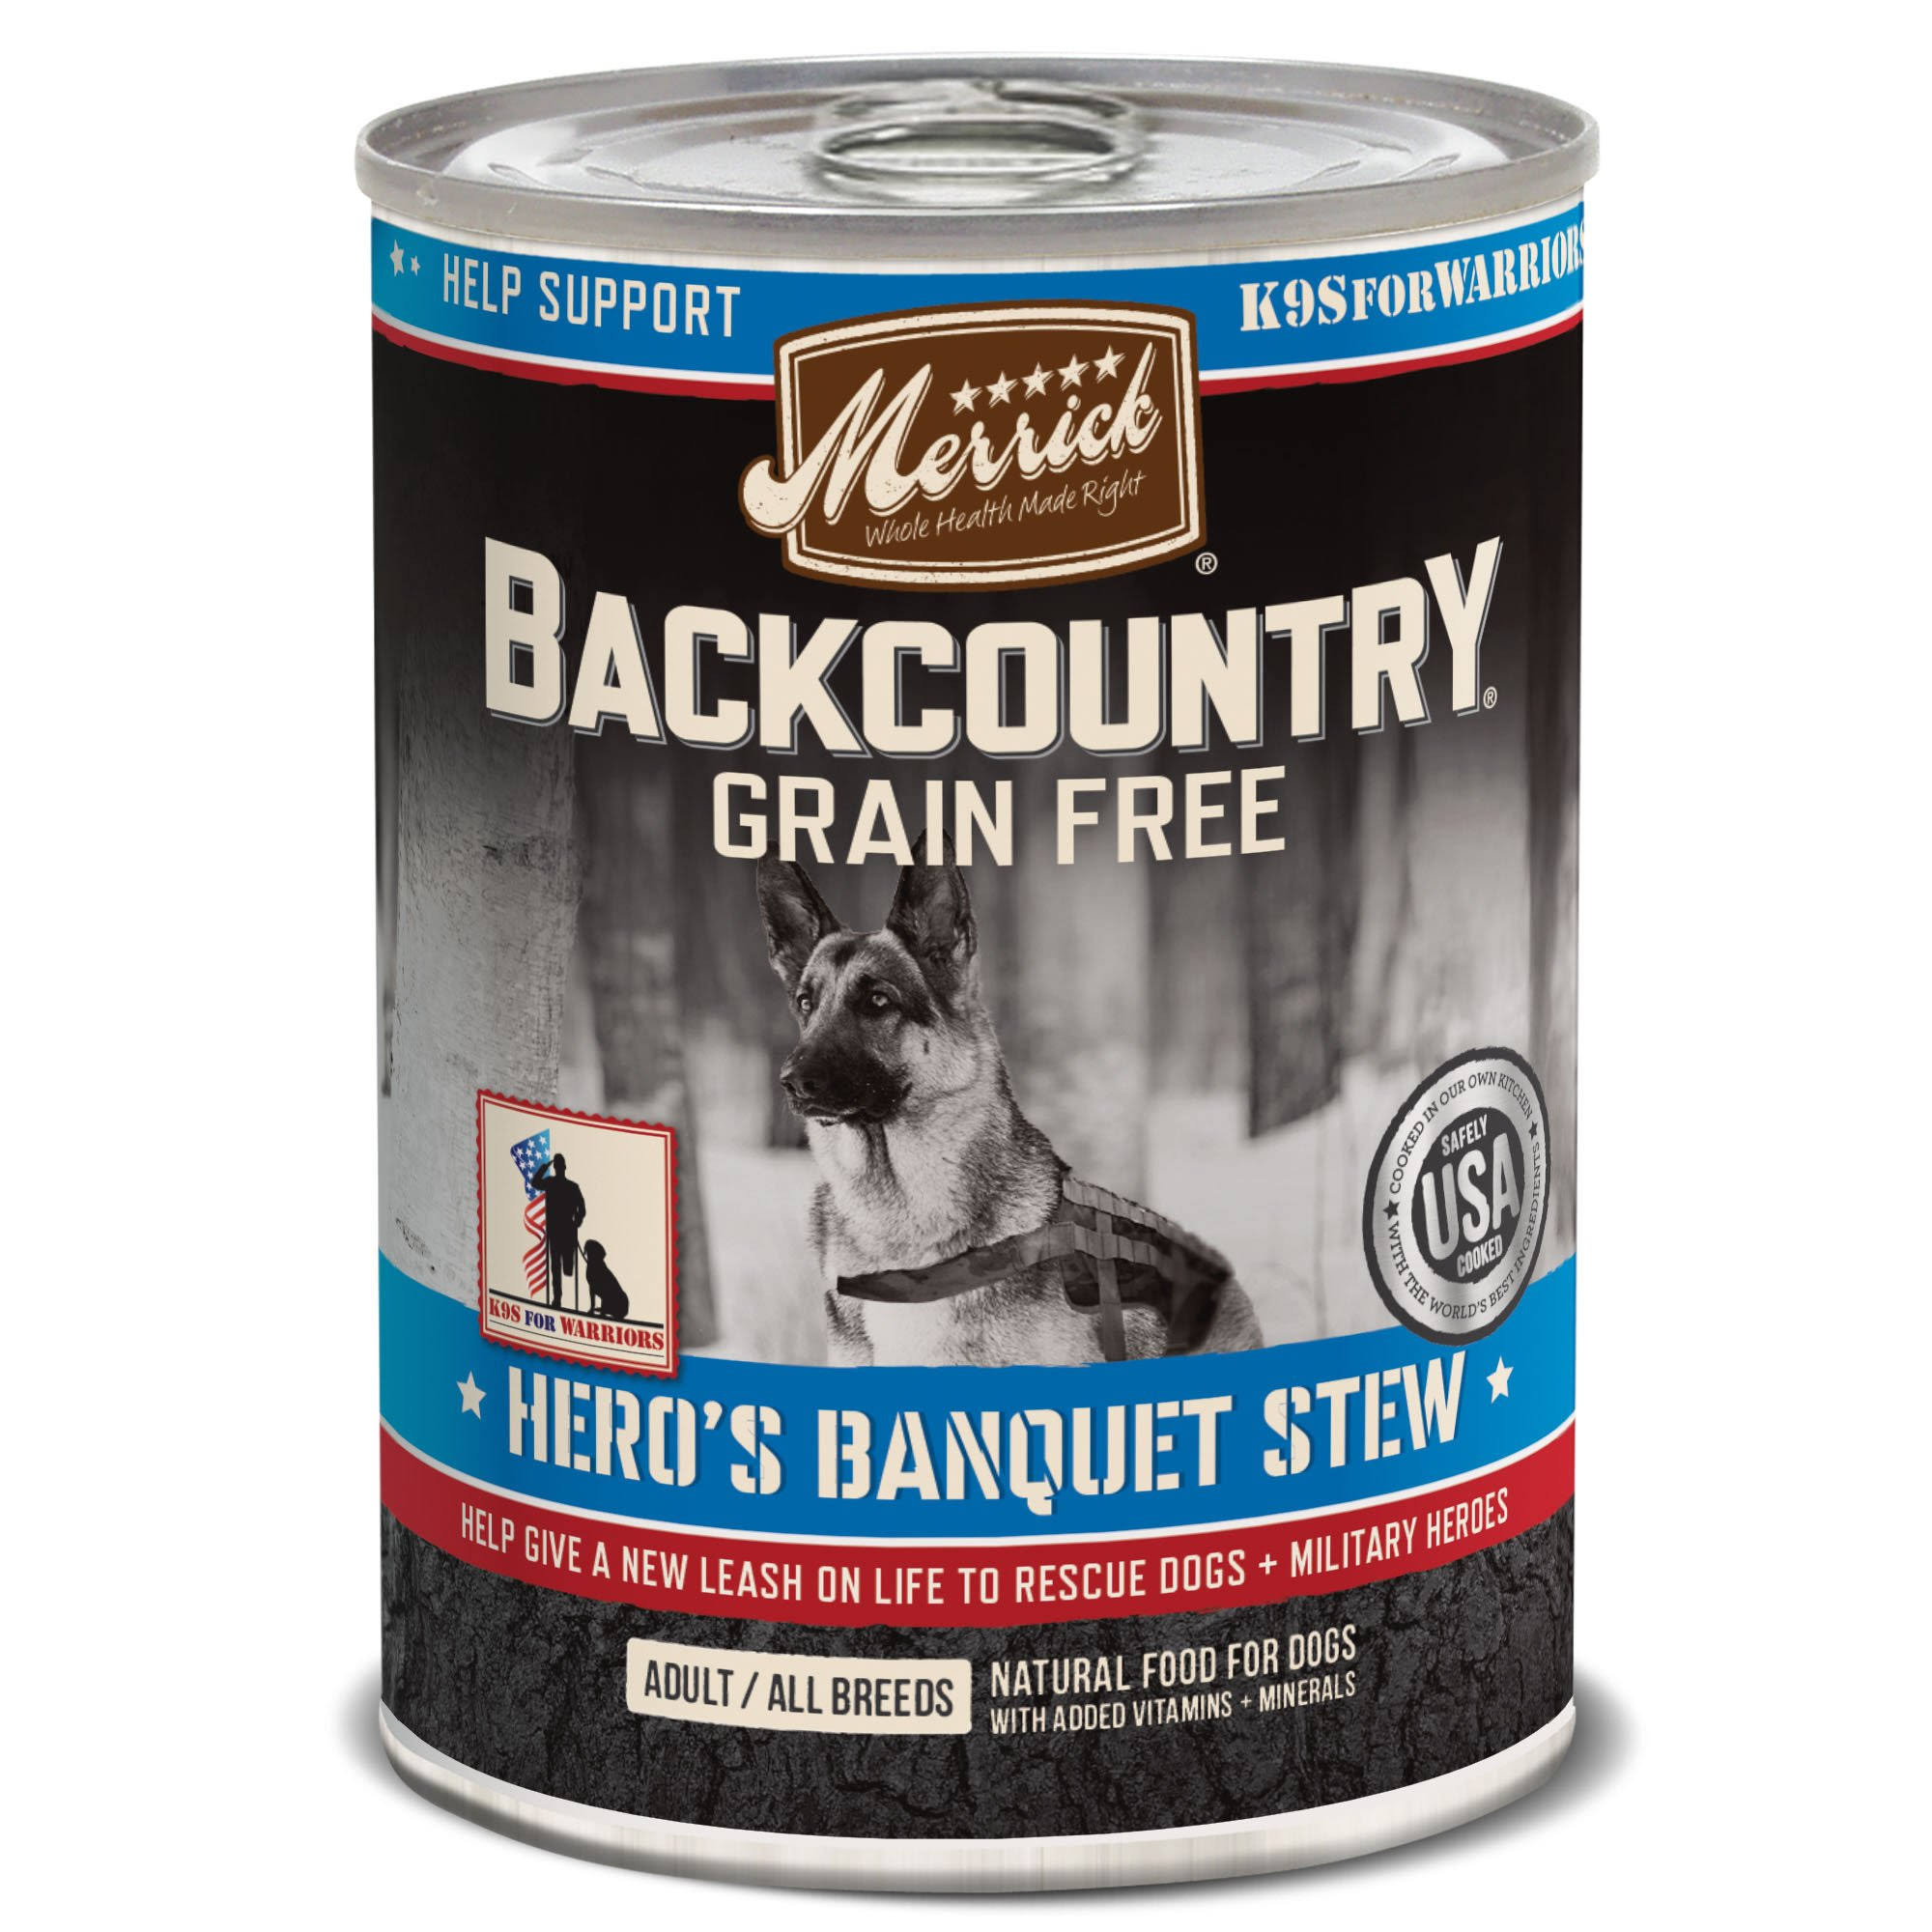 Merrick Backcountry Hero's Banquet Canned Dog Food